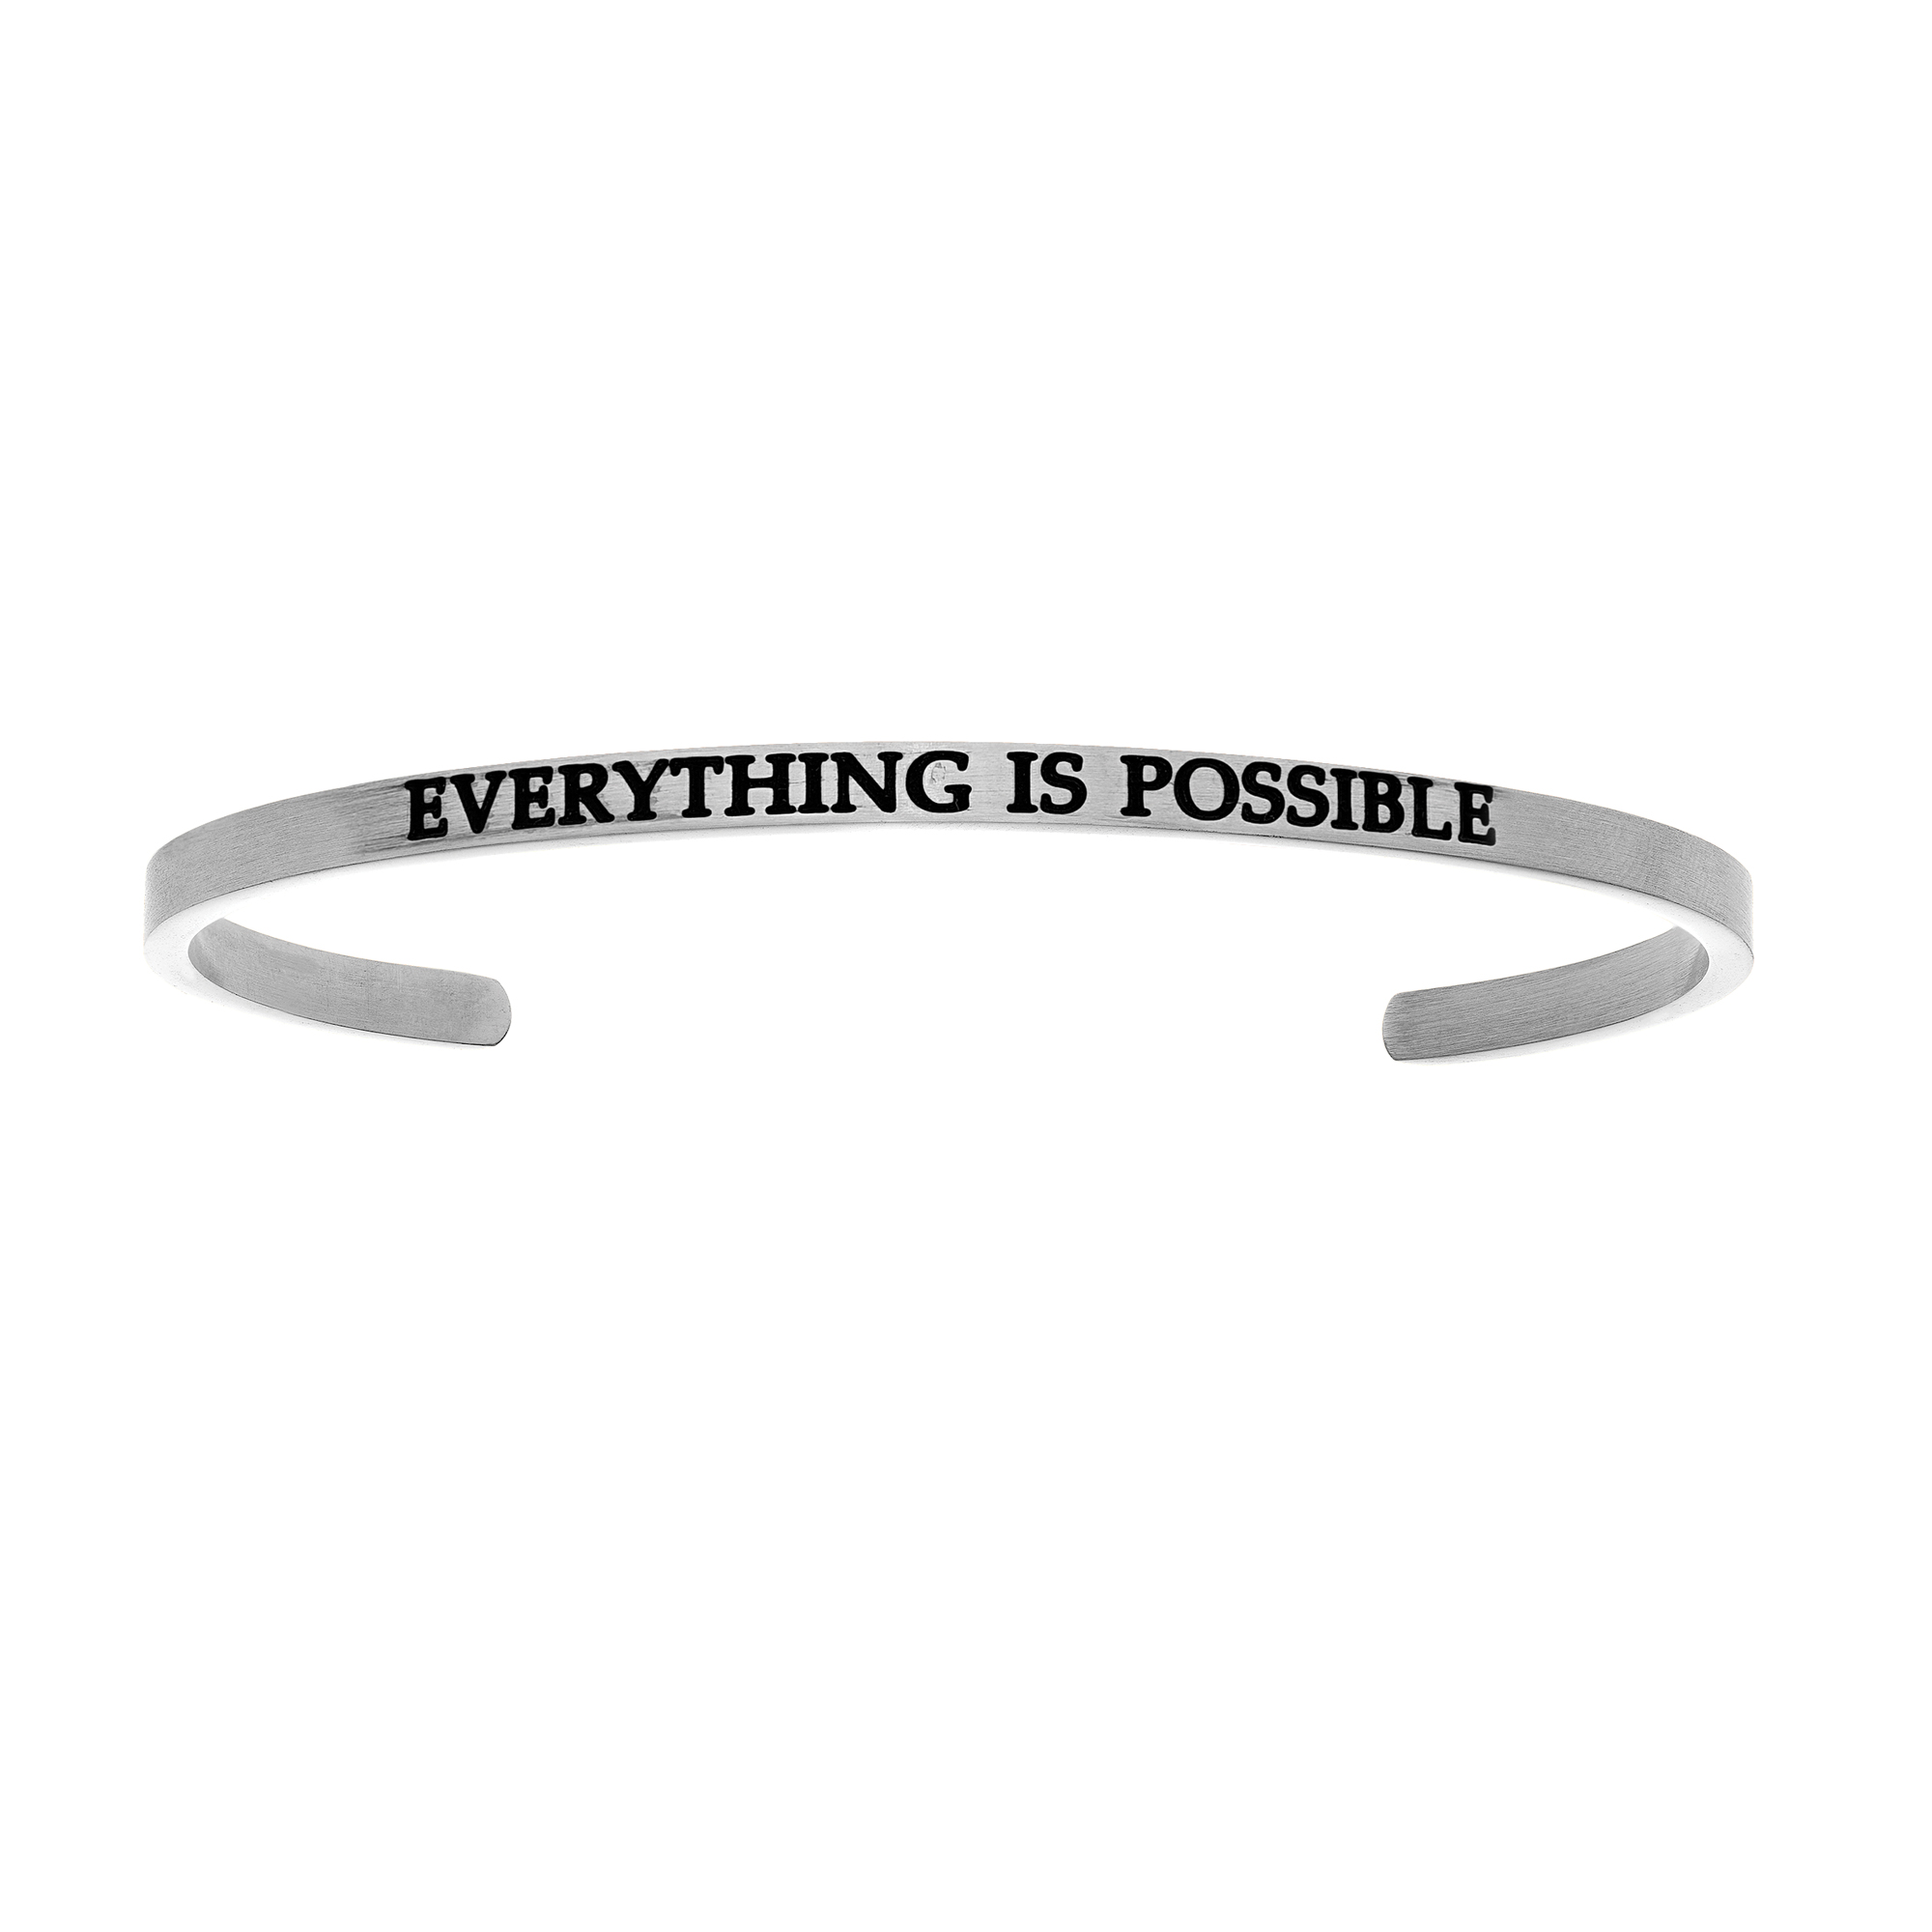 Intuitions Stainless Steel EVERYTHING IS POSSIBLE Diamond Accent Cuff Bangle Bracelet, 7″